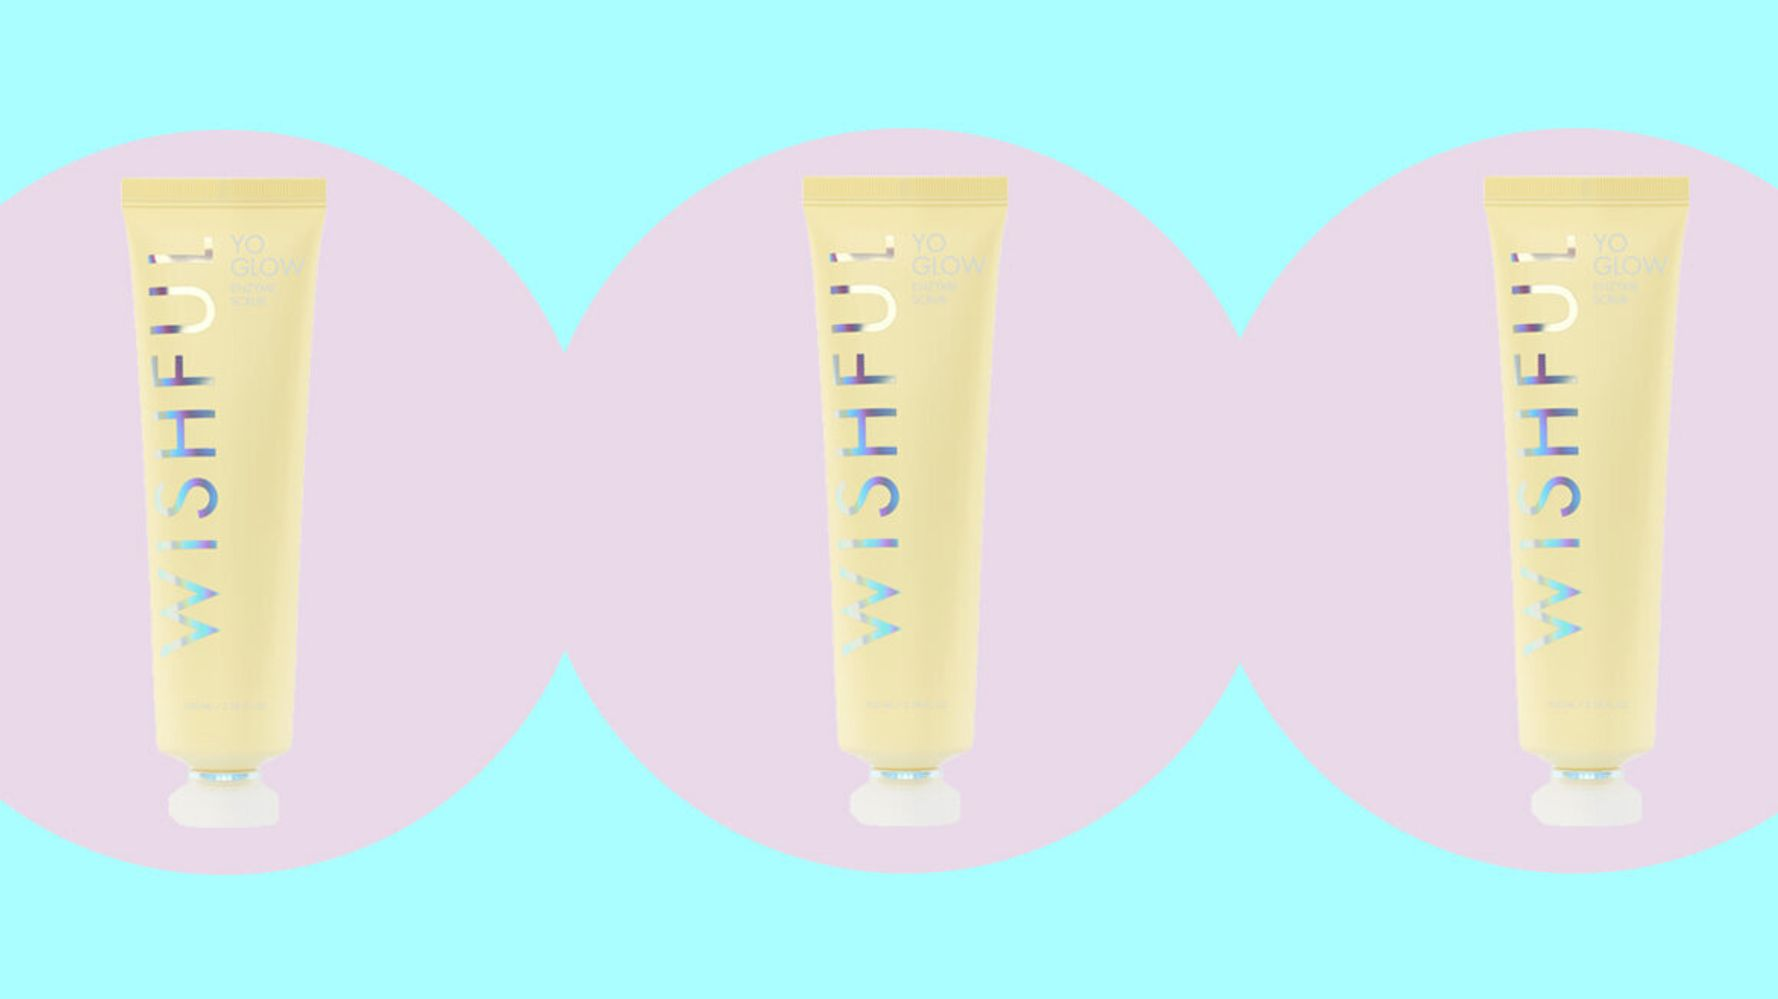 Huda Has Launched An Enzyme Face Scrub – Is It Any Good?